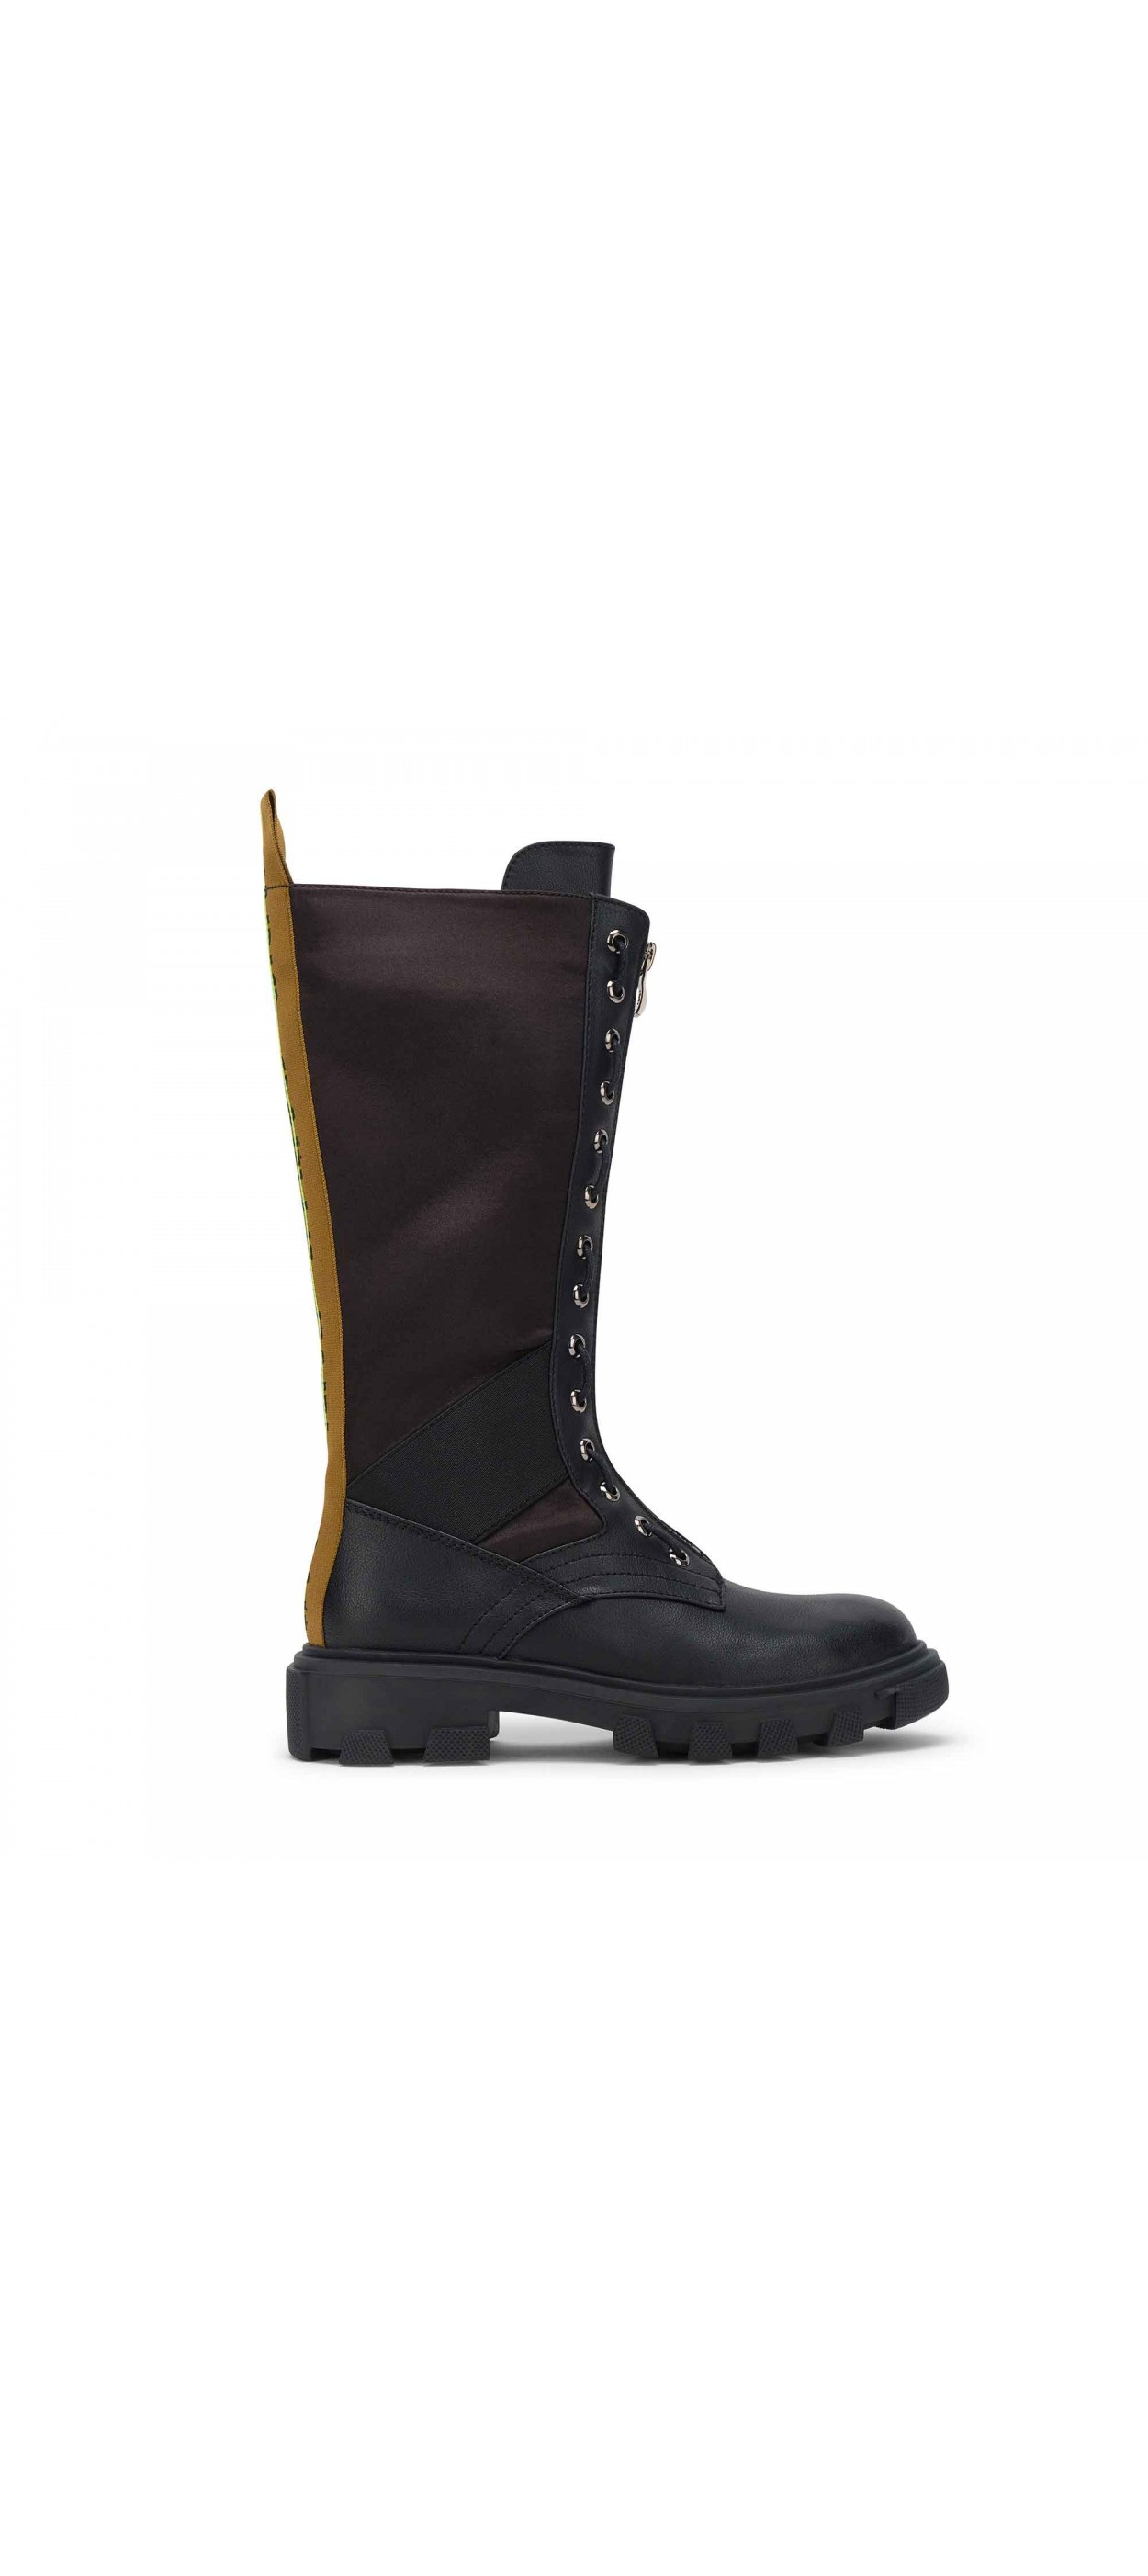 BOOT - GBDA1802 - GAELLE PARIS